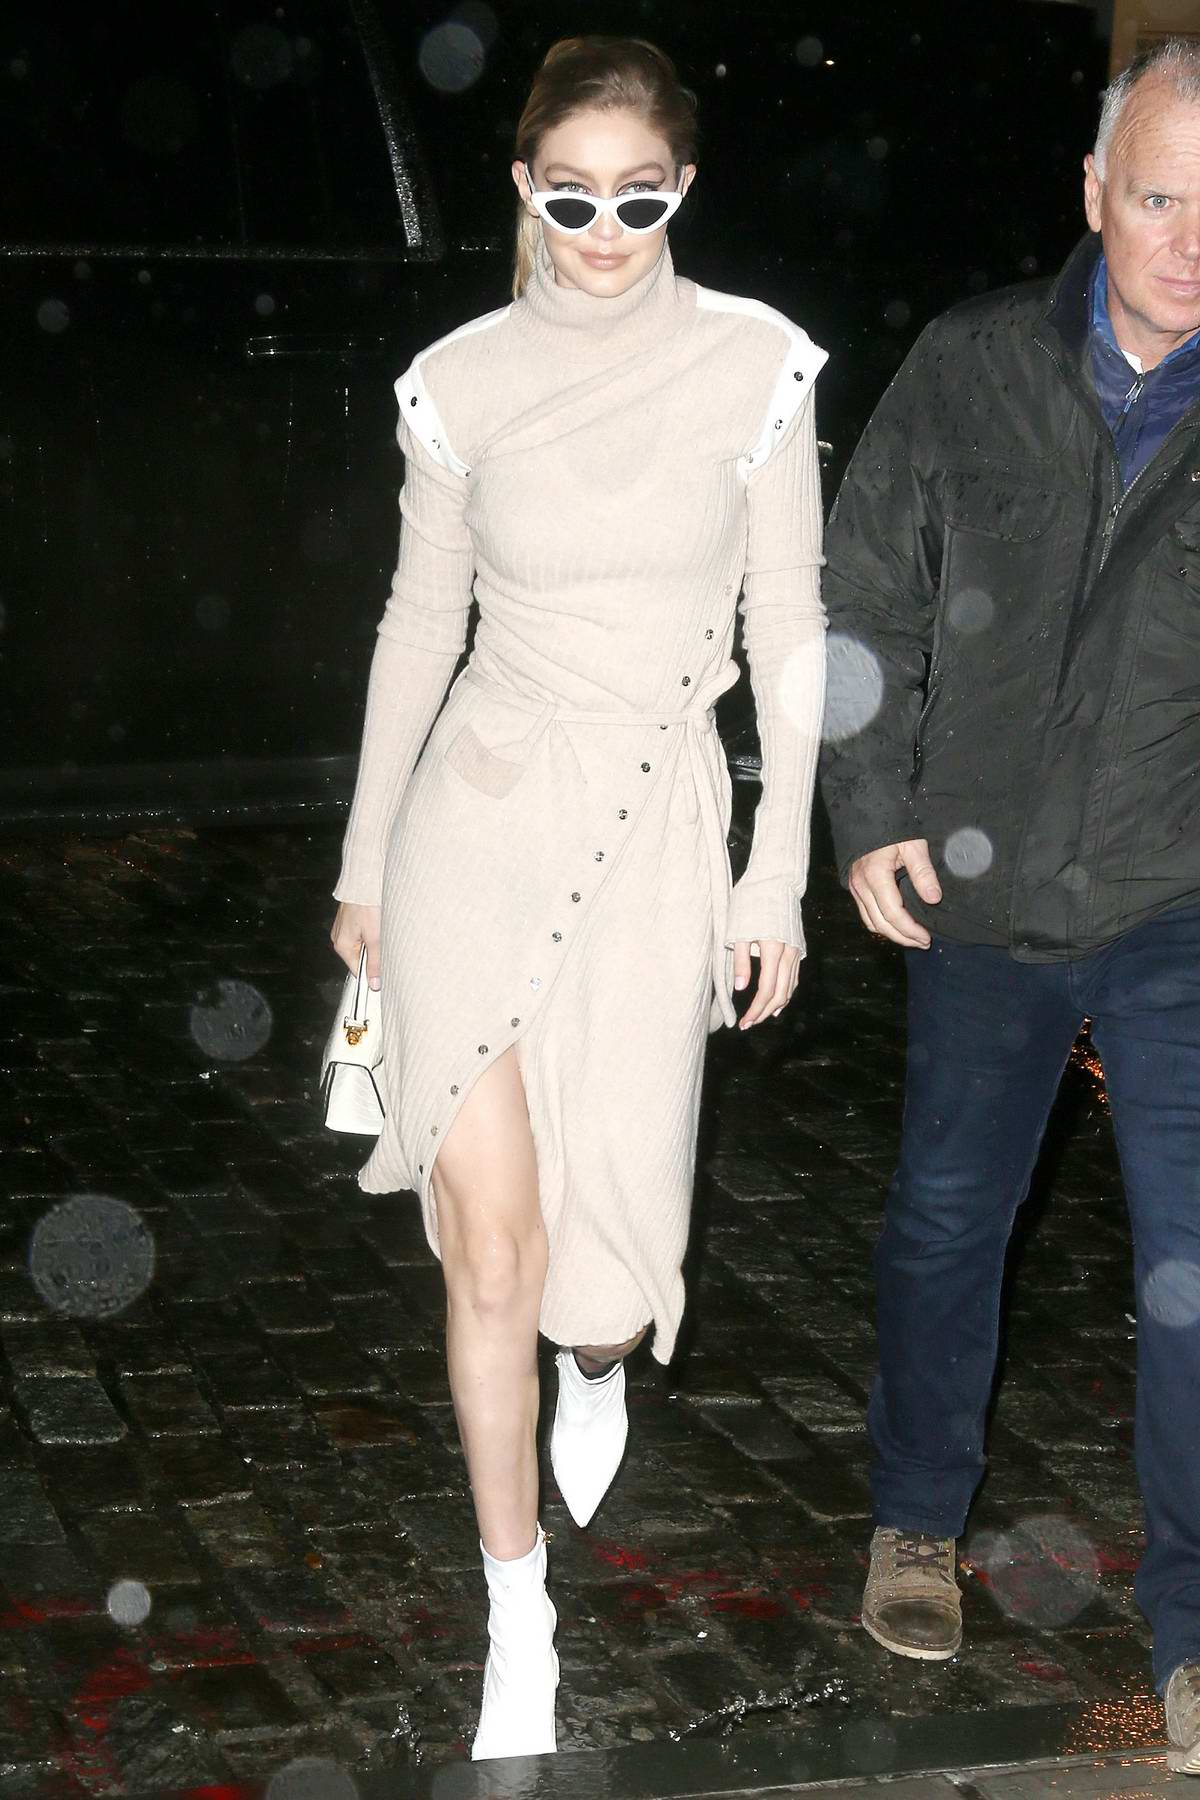 Gigi Hadid steps out in beige outfit and white boots during a night out in New York City